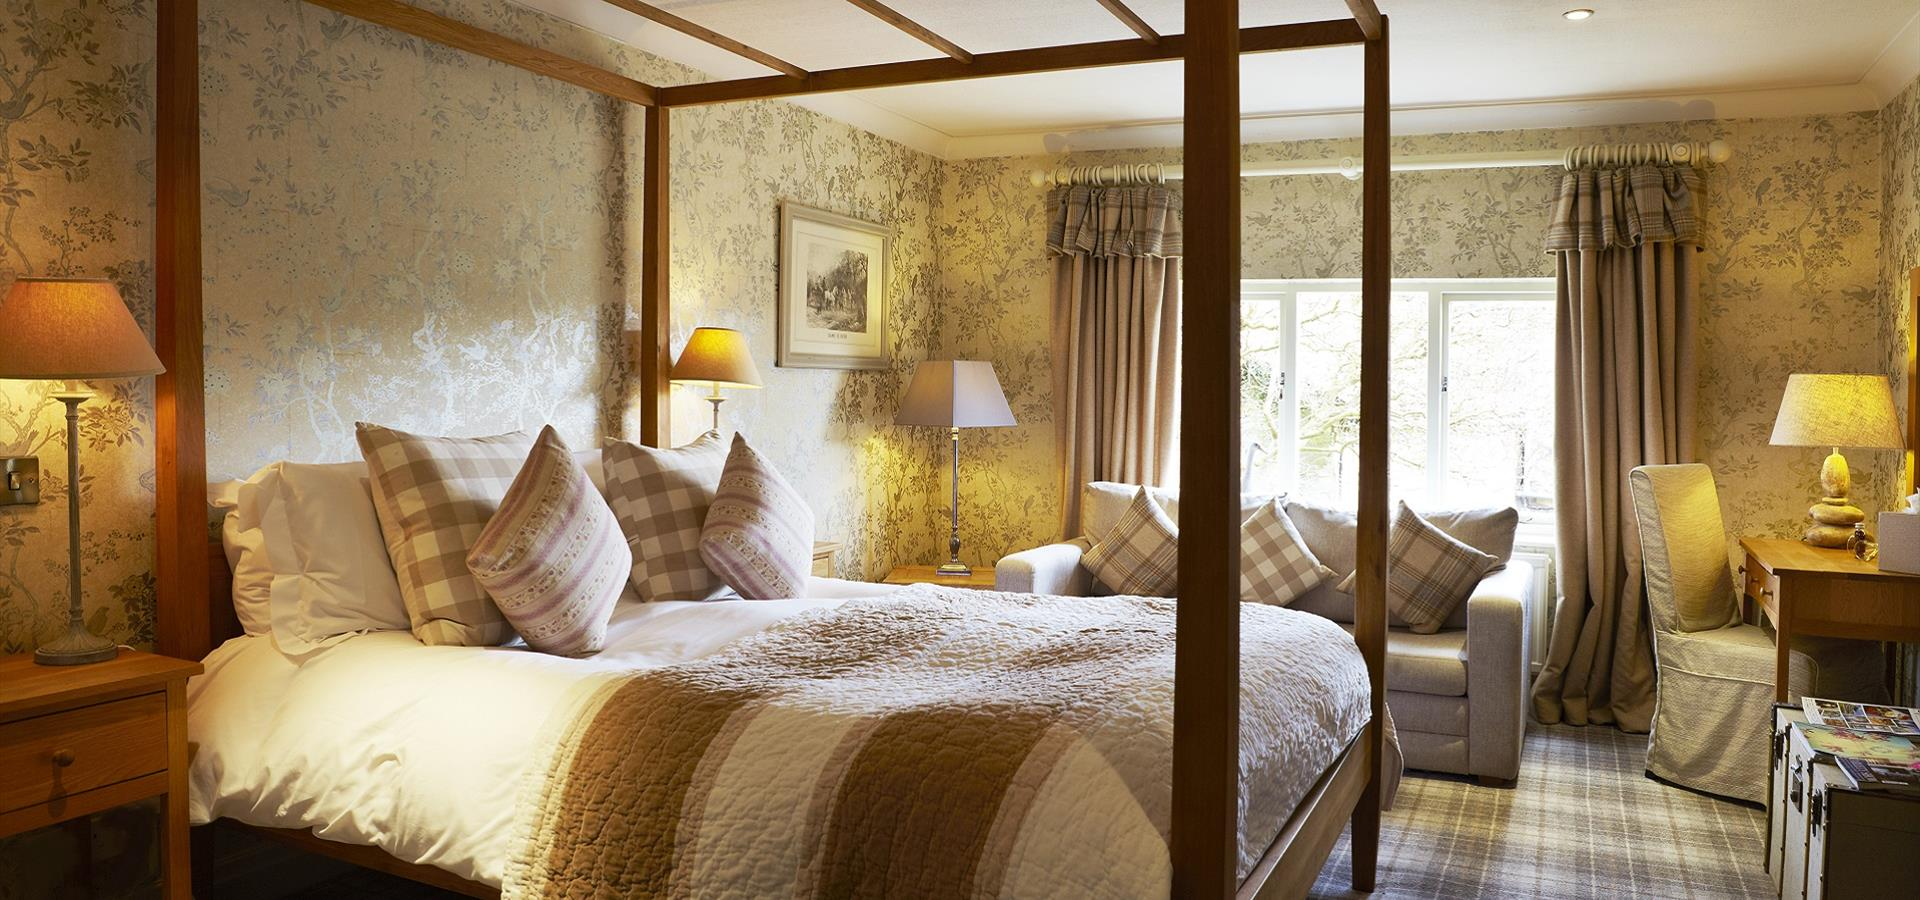 An image of Four Poster Bed Hotel Room, Scarborough - David Chalmers